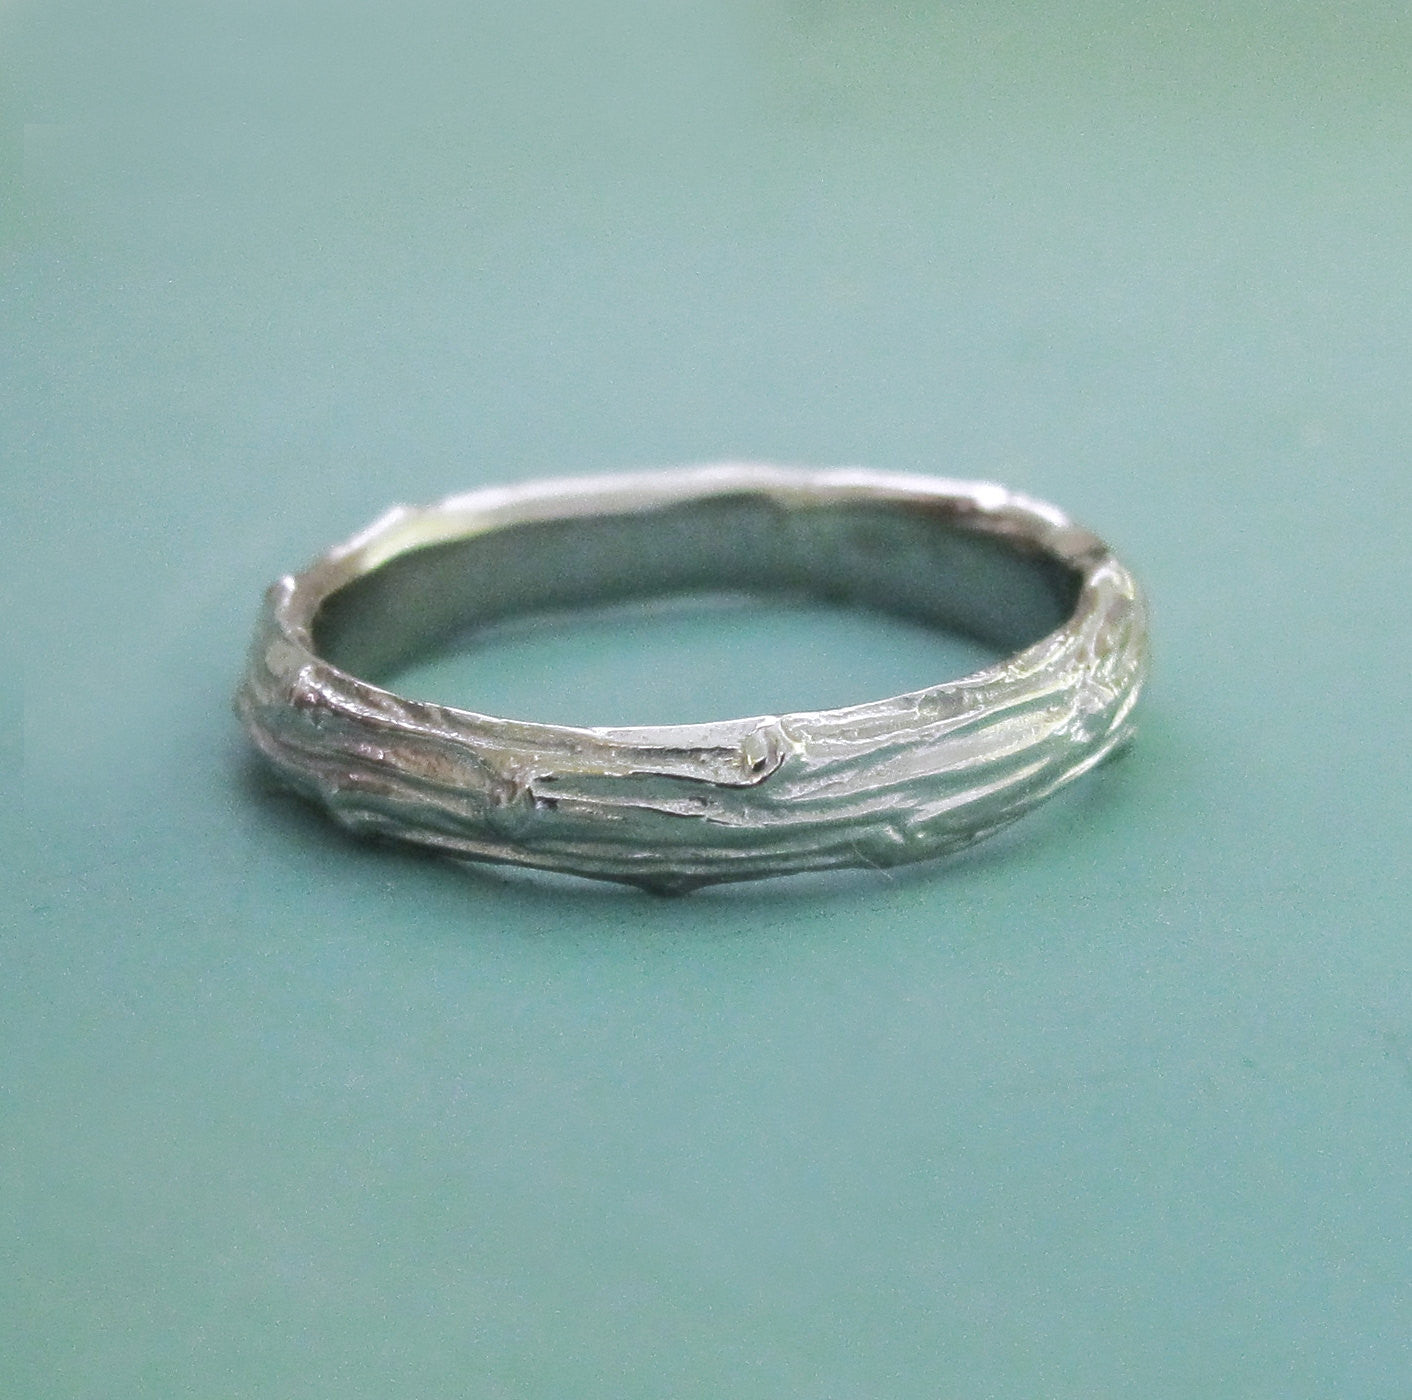 White Gold Twig Wedding Band - Recycled 14k Palladium White Gold - Wide Pine Branch